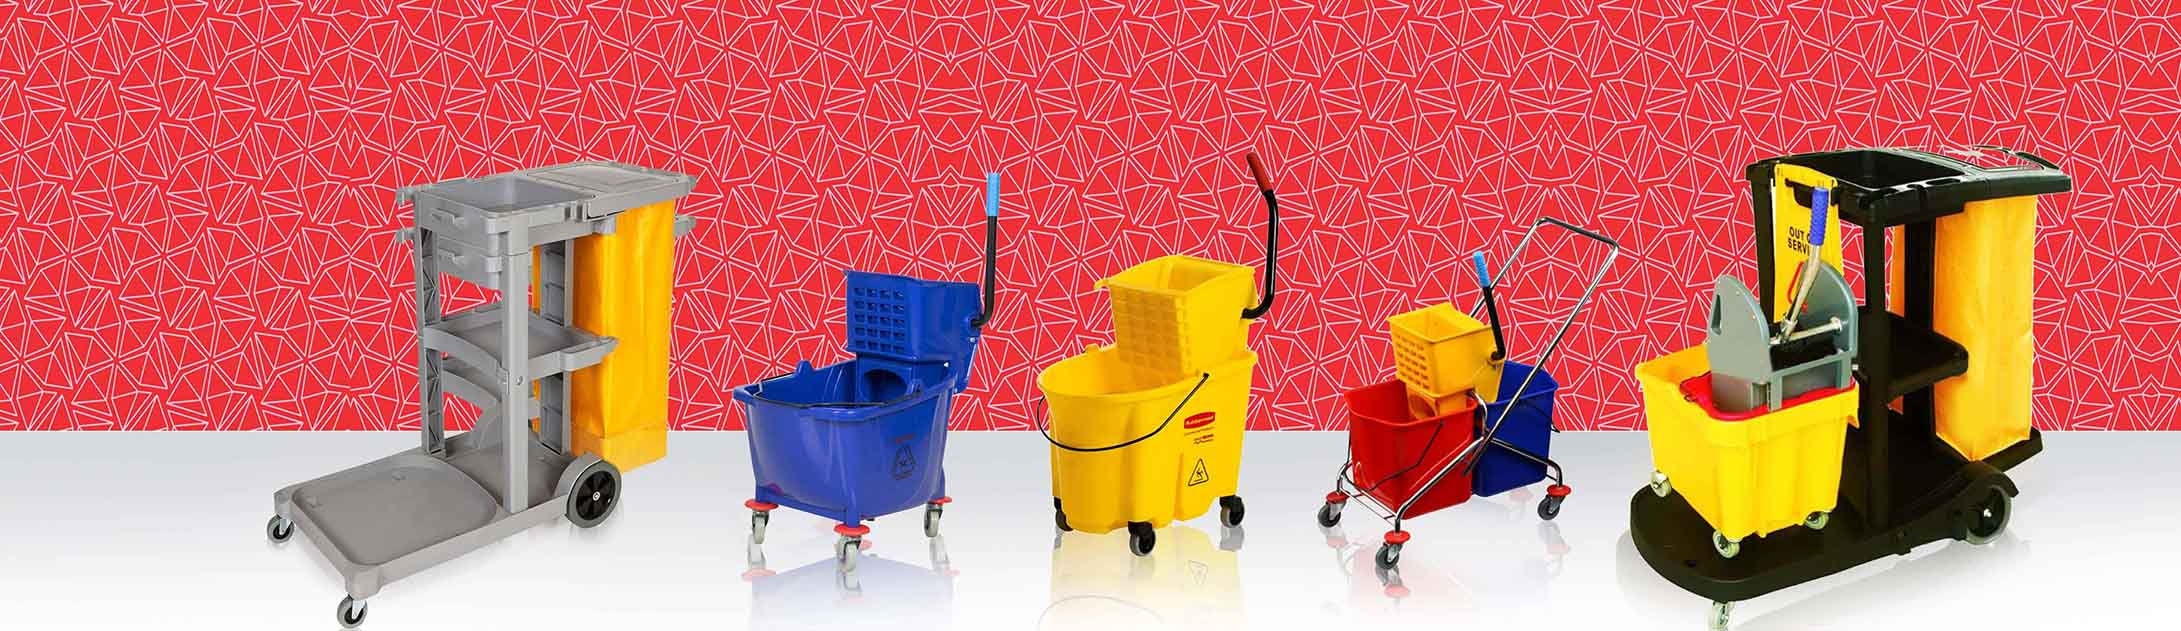 Best Mop Buckets Trolley Supplier in Qatar | Hicareqatar com